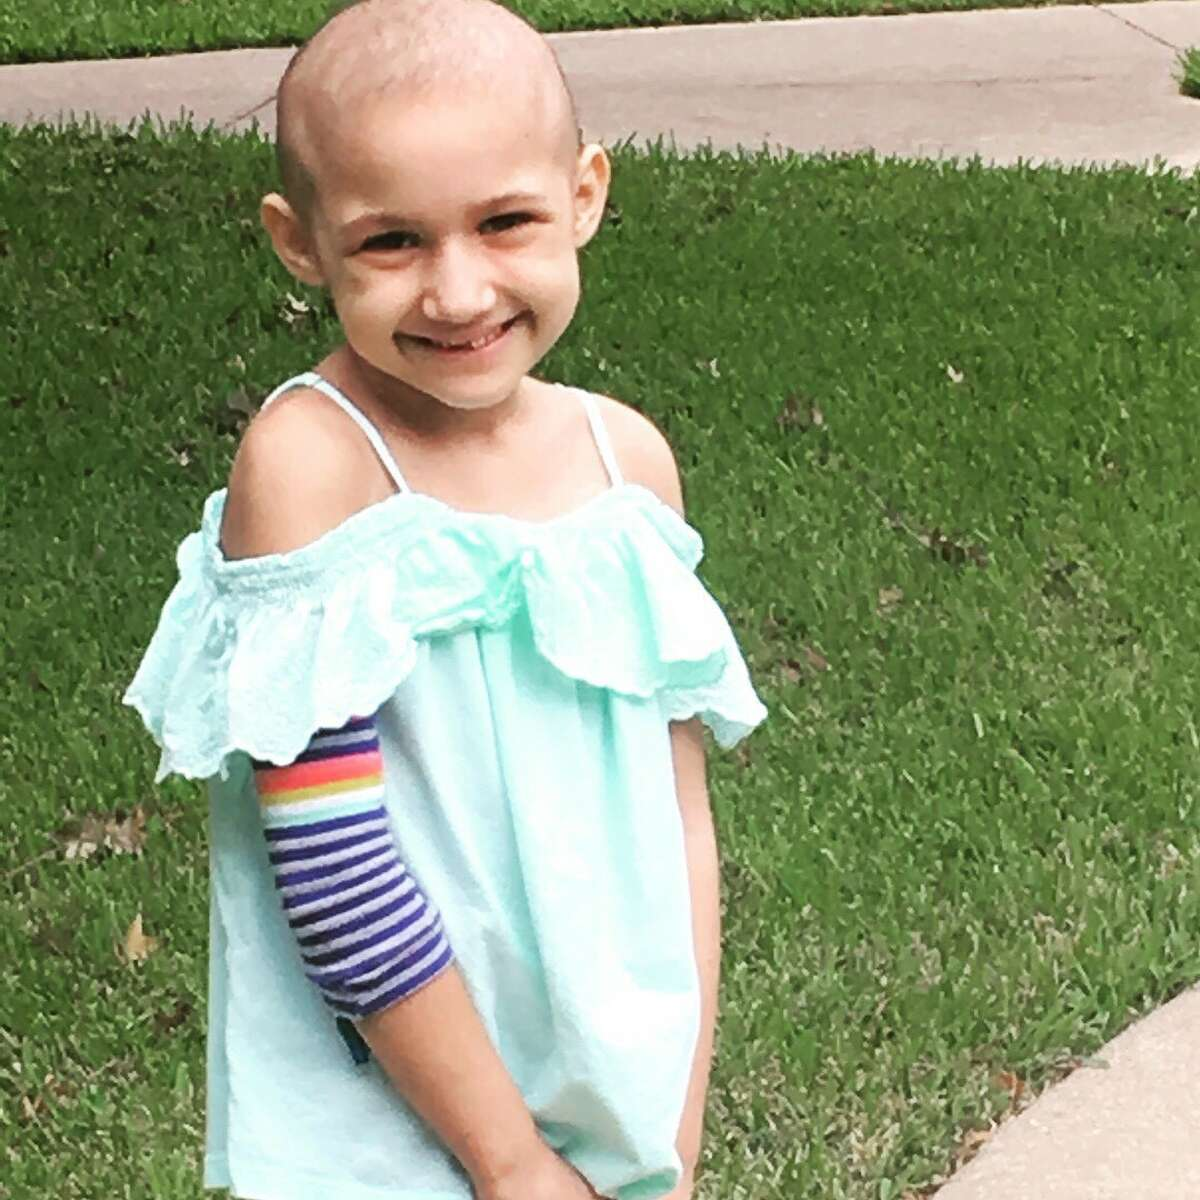 Susana Obregon, 7, suffers from Acute Lymphoblastic Leukemia but is receiving treatment atTexas Children�'s Hospital in Houston.